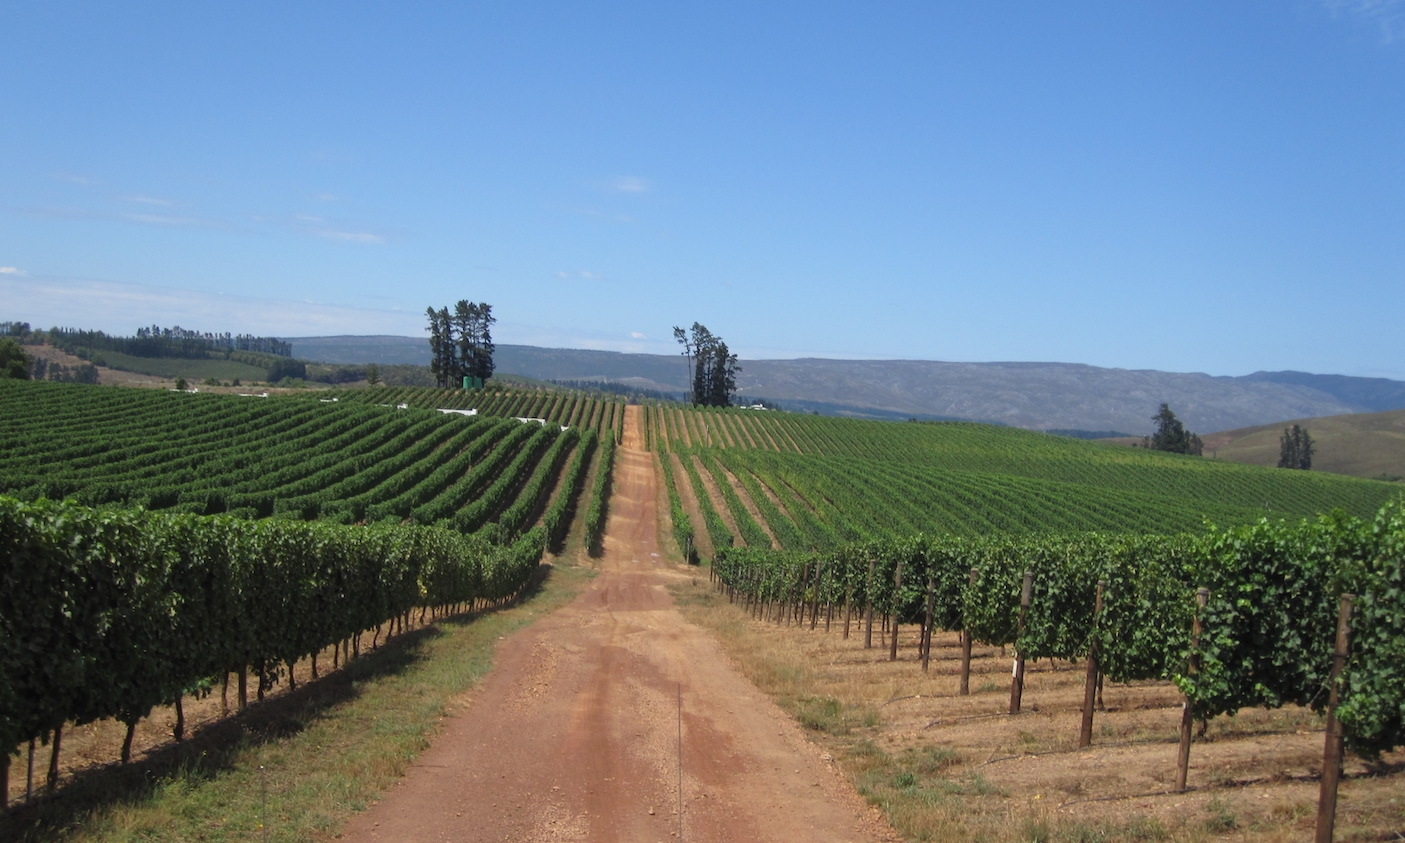 Vineyards in the Middle East